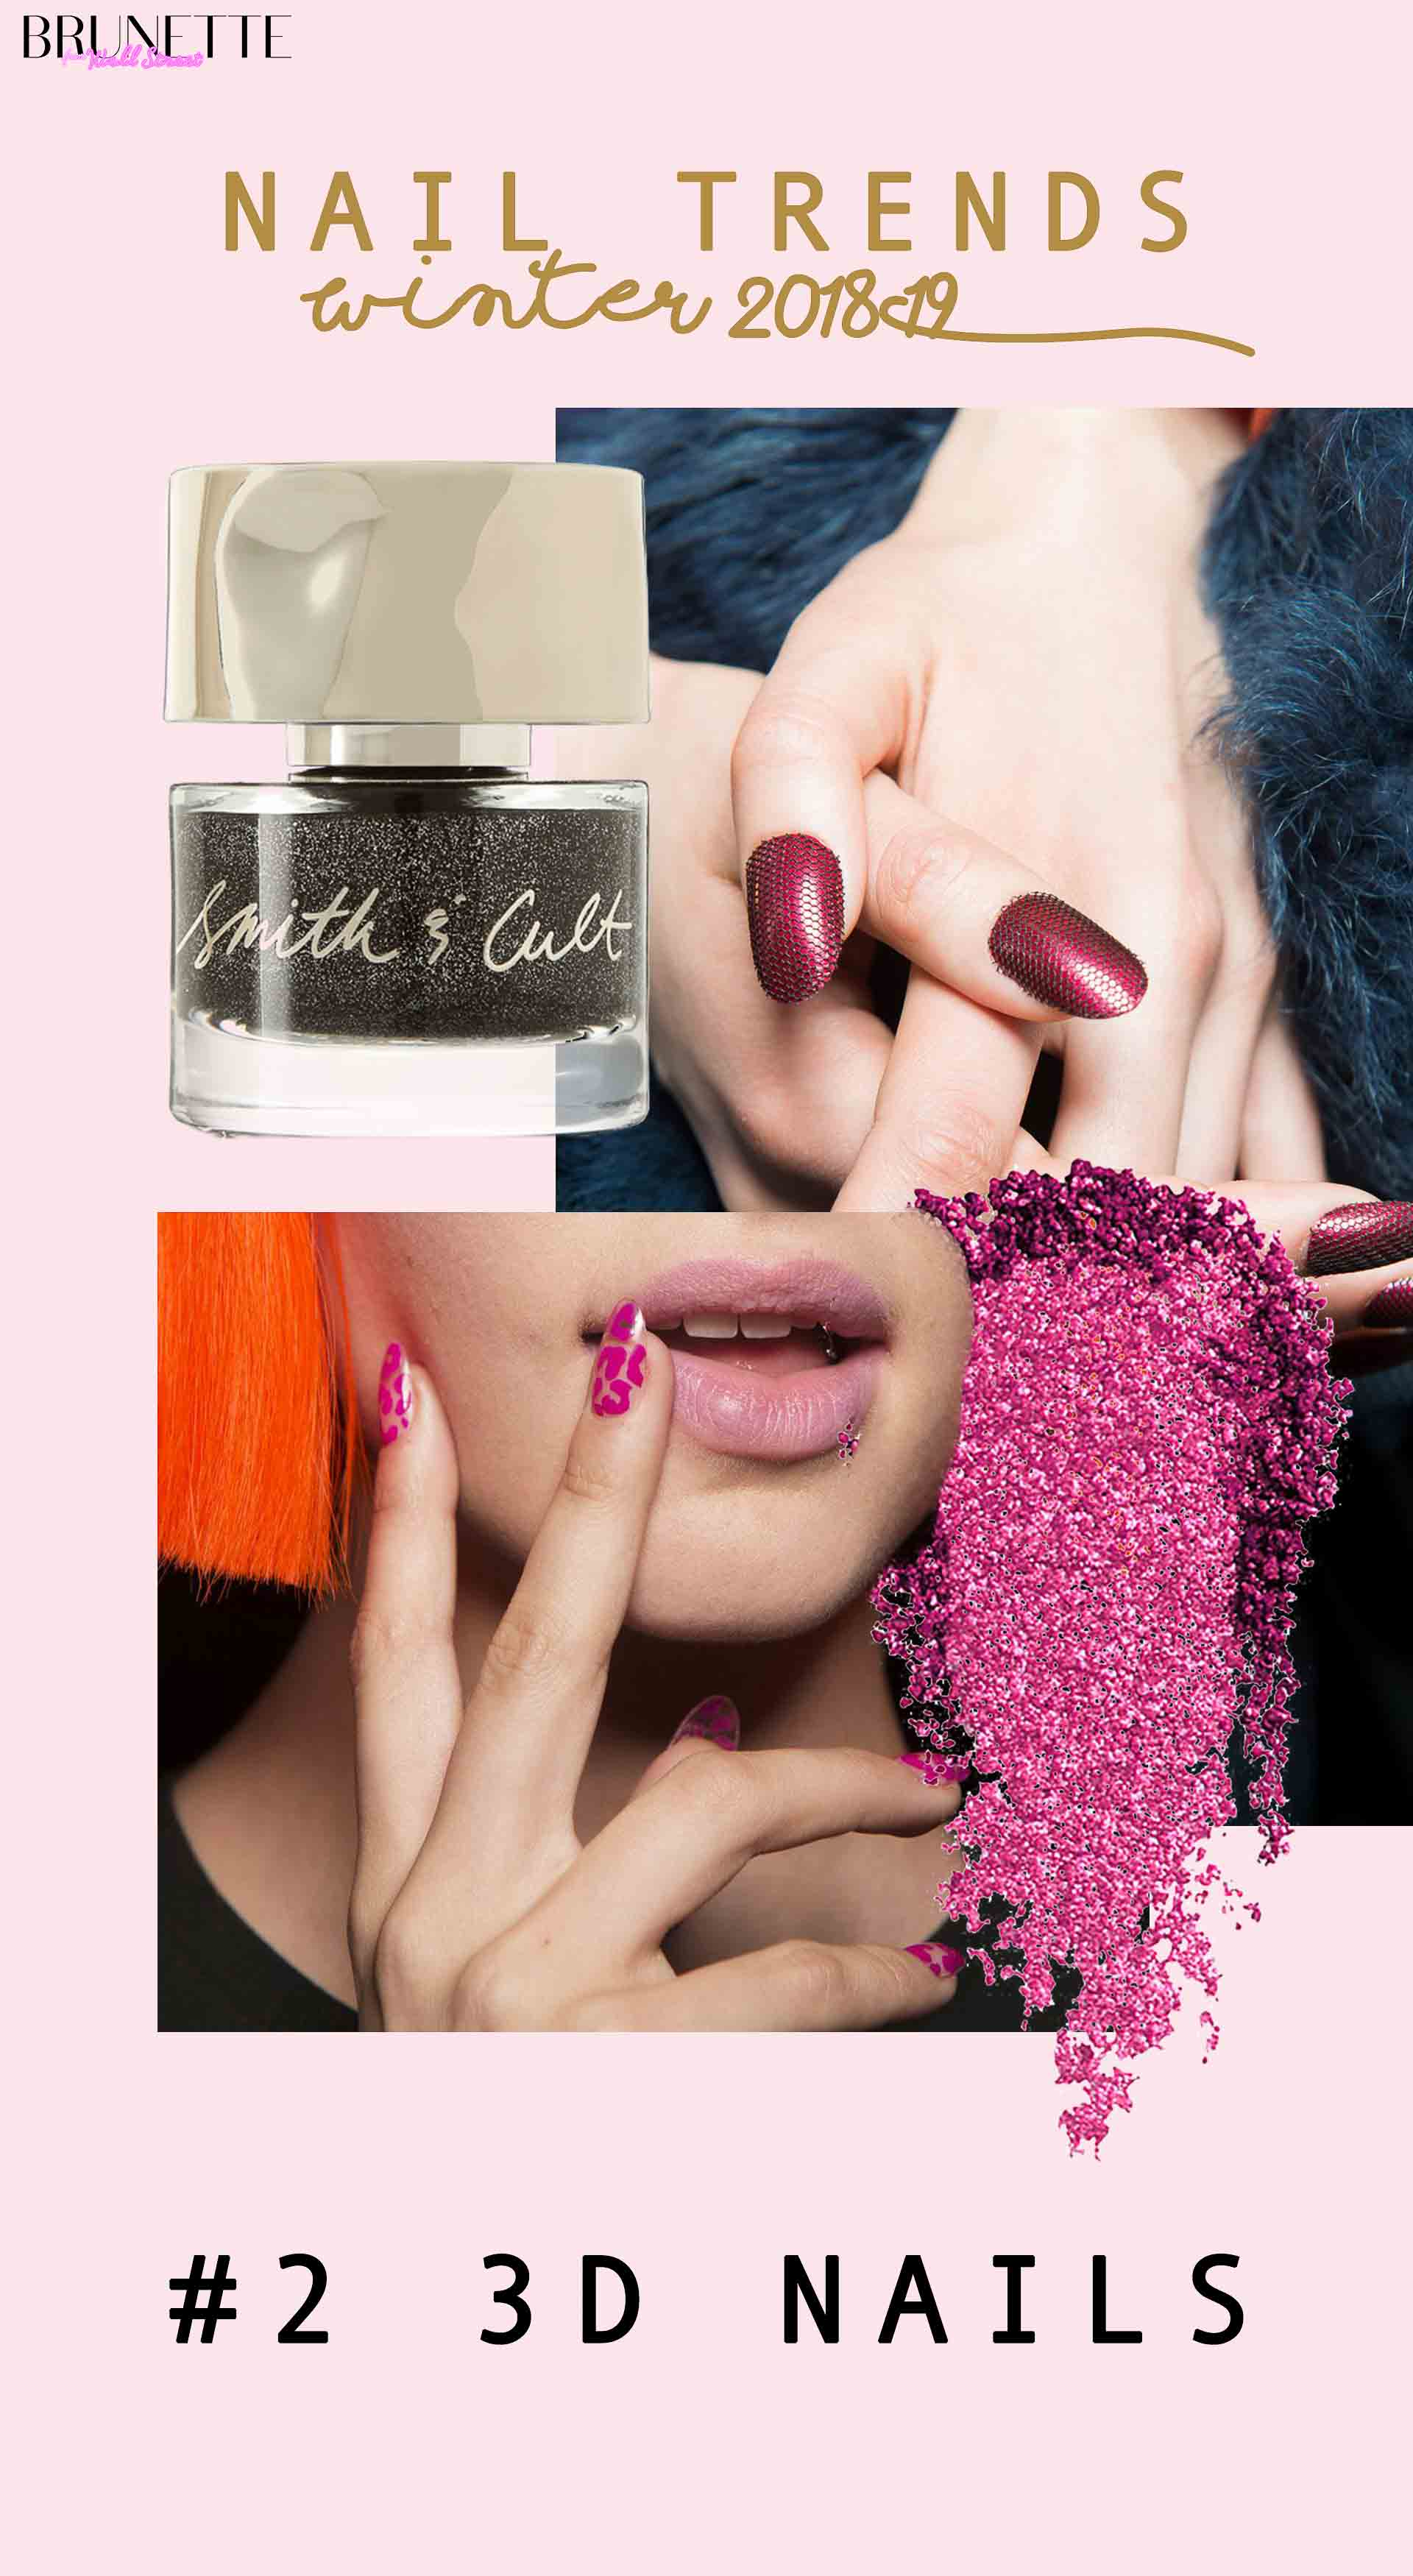 nail trends winter 2018 #2 3D nails